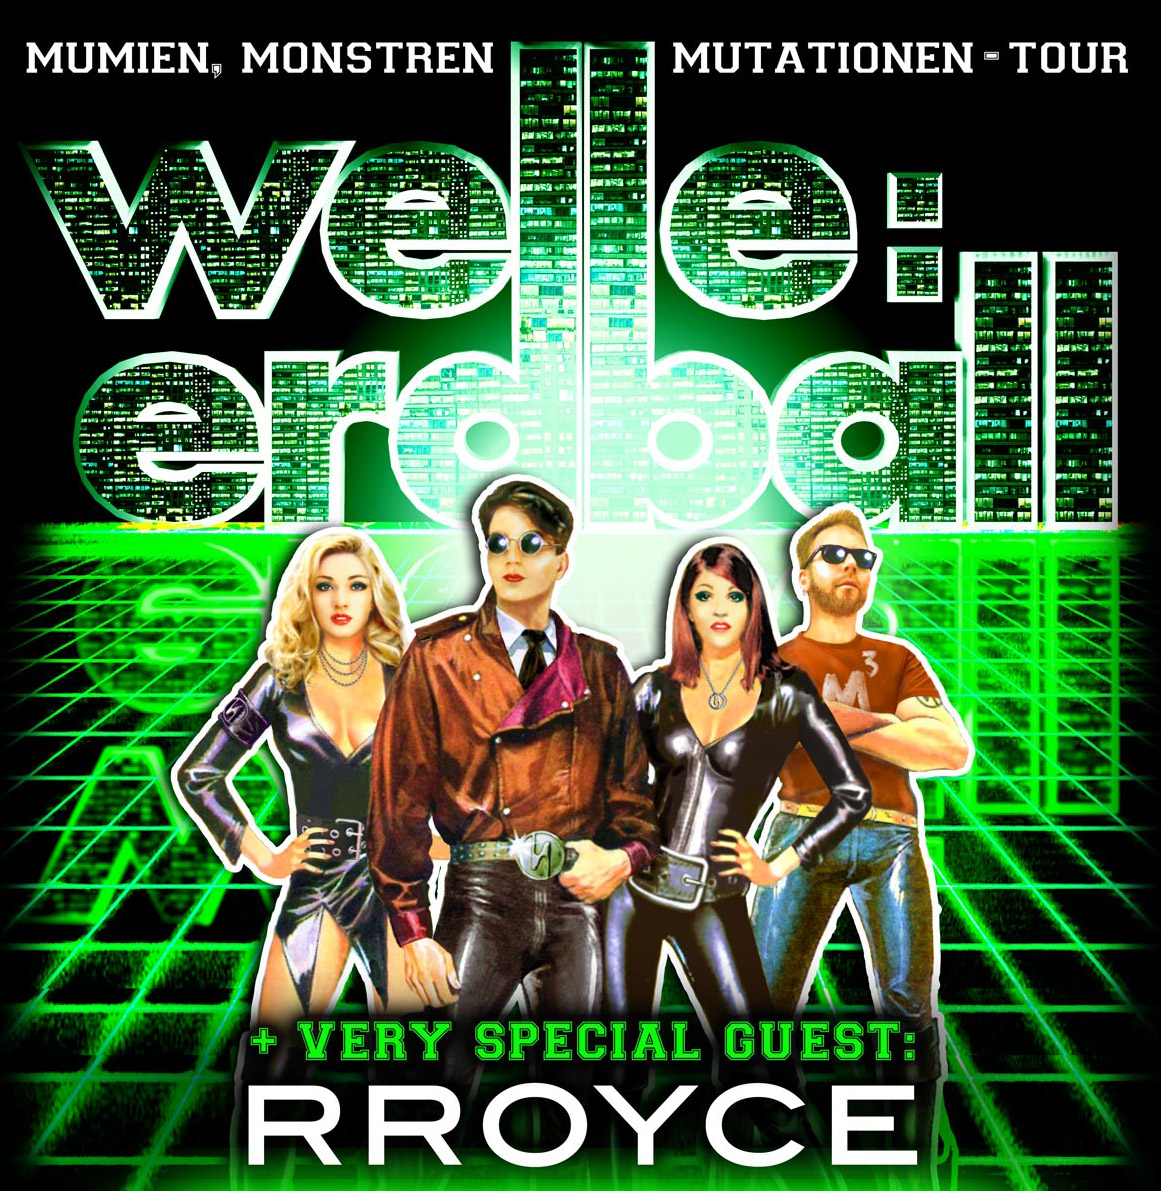 WELLE:ERDBALL - Mumien, Monstren, Mutationen TOUR 2019 - 23.11.2019